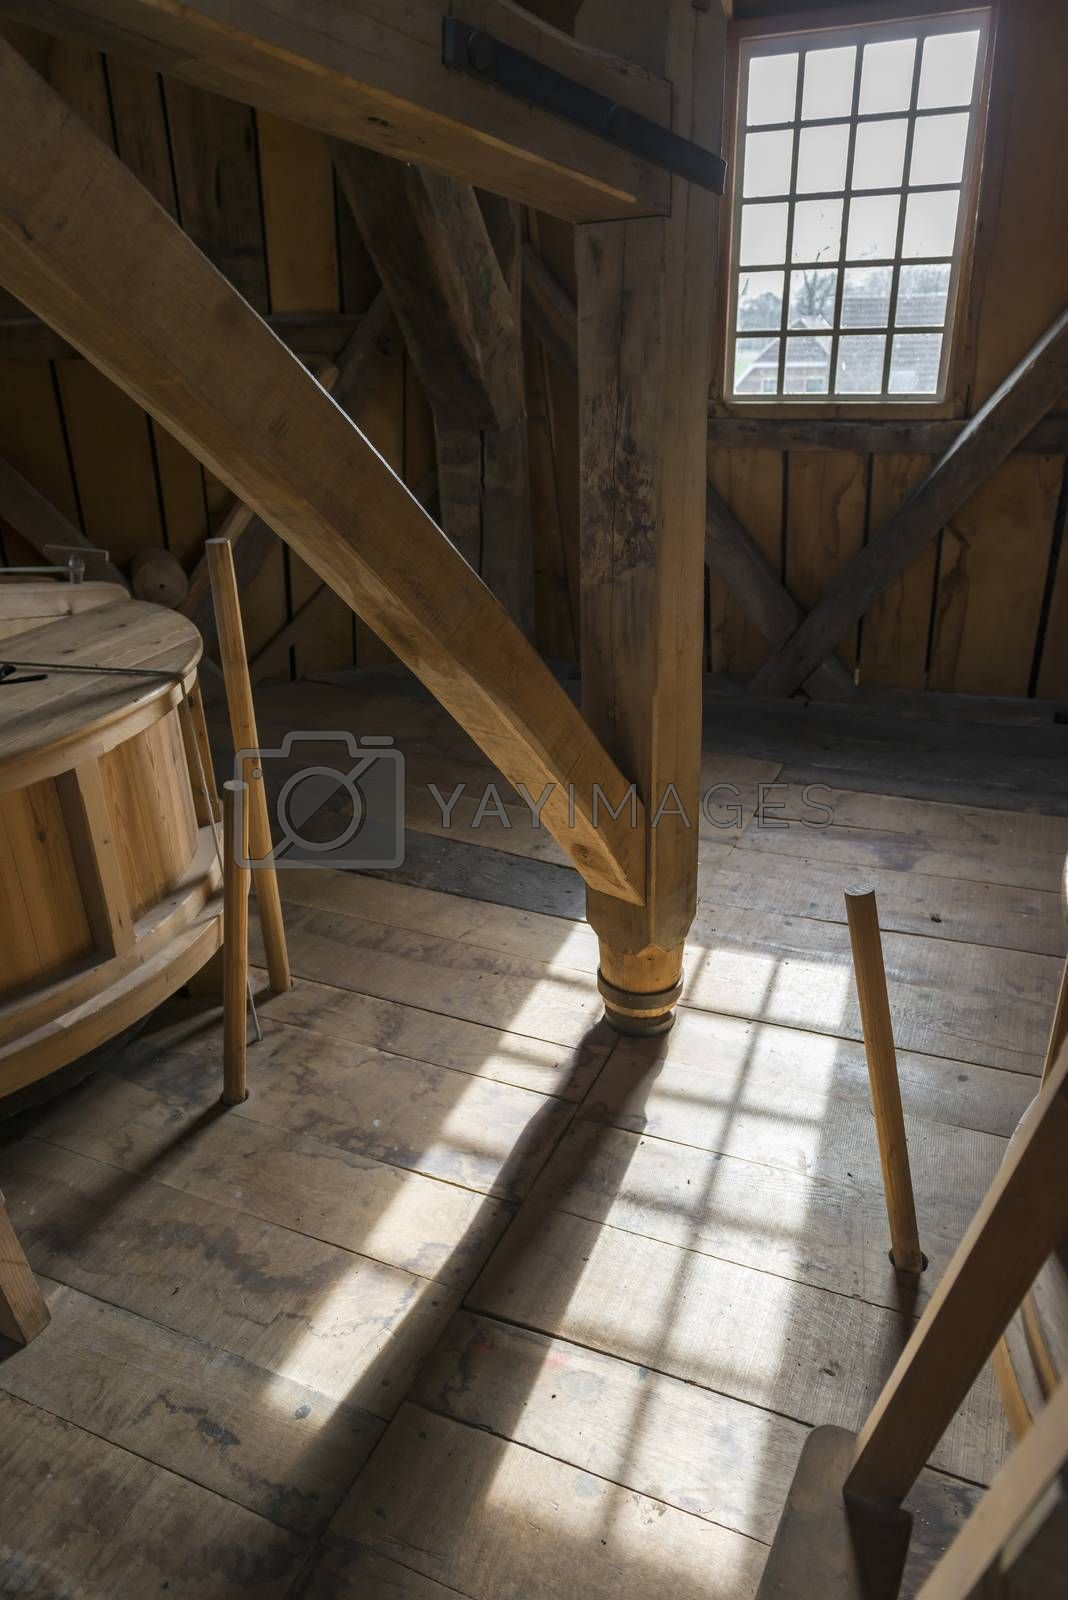 Interior of a historic wooden mill with a detail of an old wooden crusher in the area with beautiful light